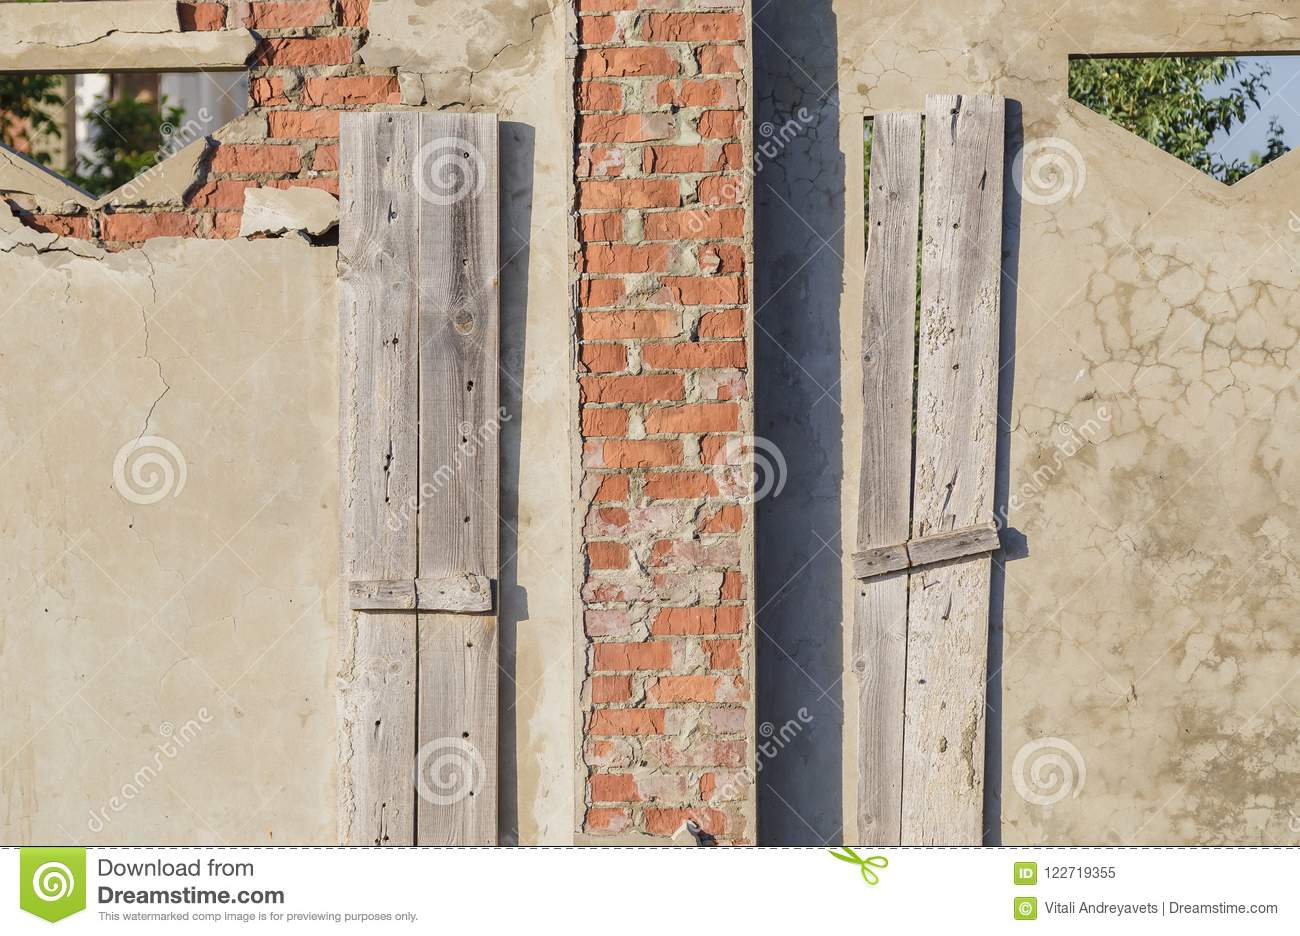 Facade of abandoned building with three doors.